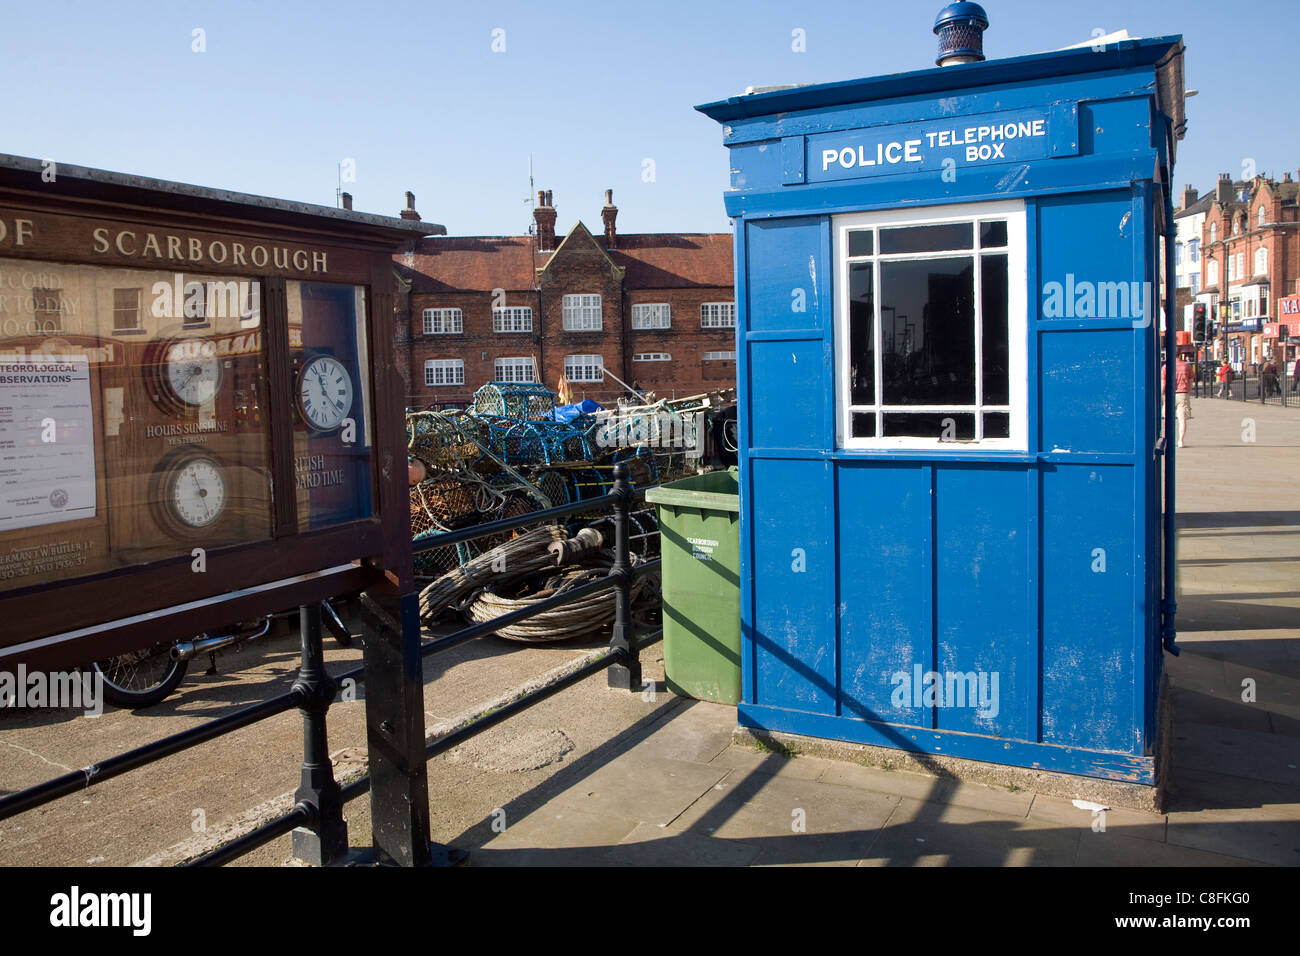 Old blue police telephone box on the seafront, Scarborough, Yorkshire, England - Stock Image